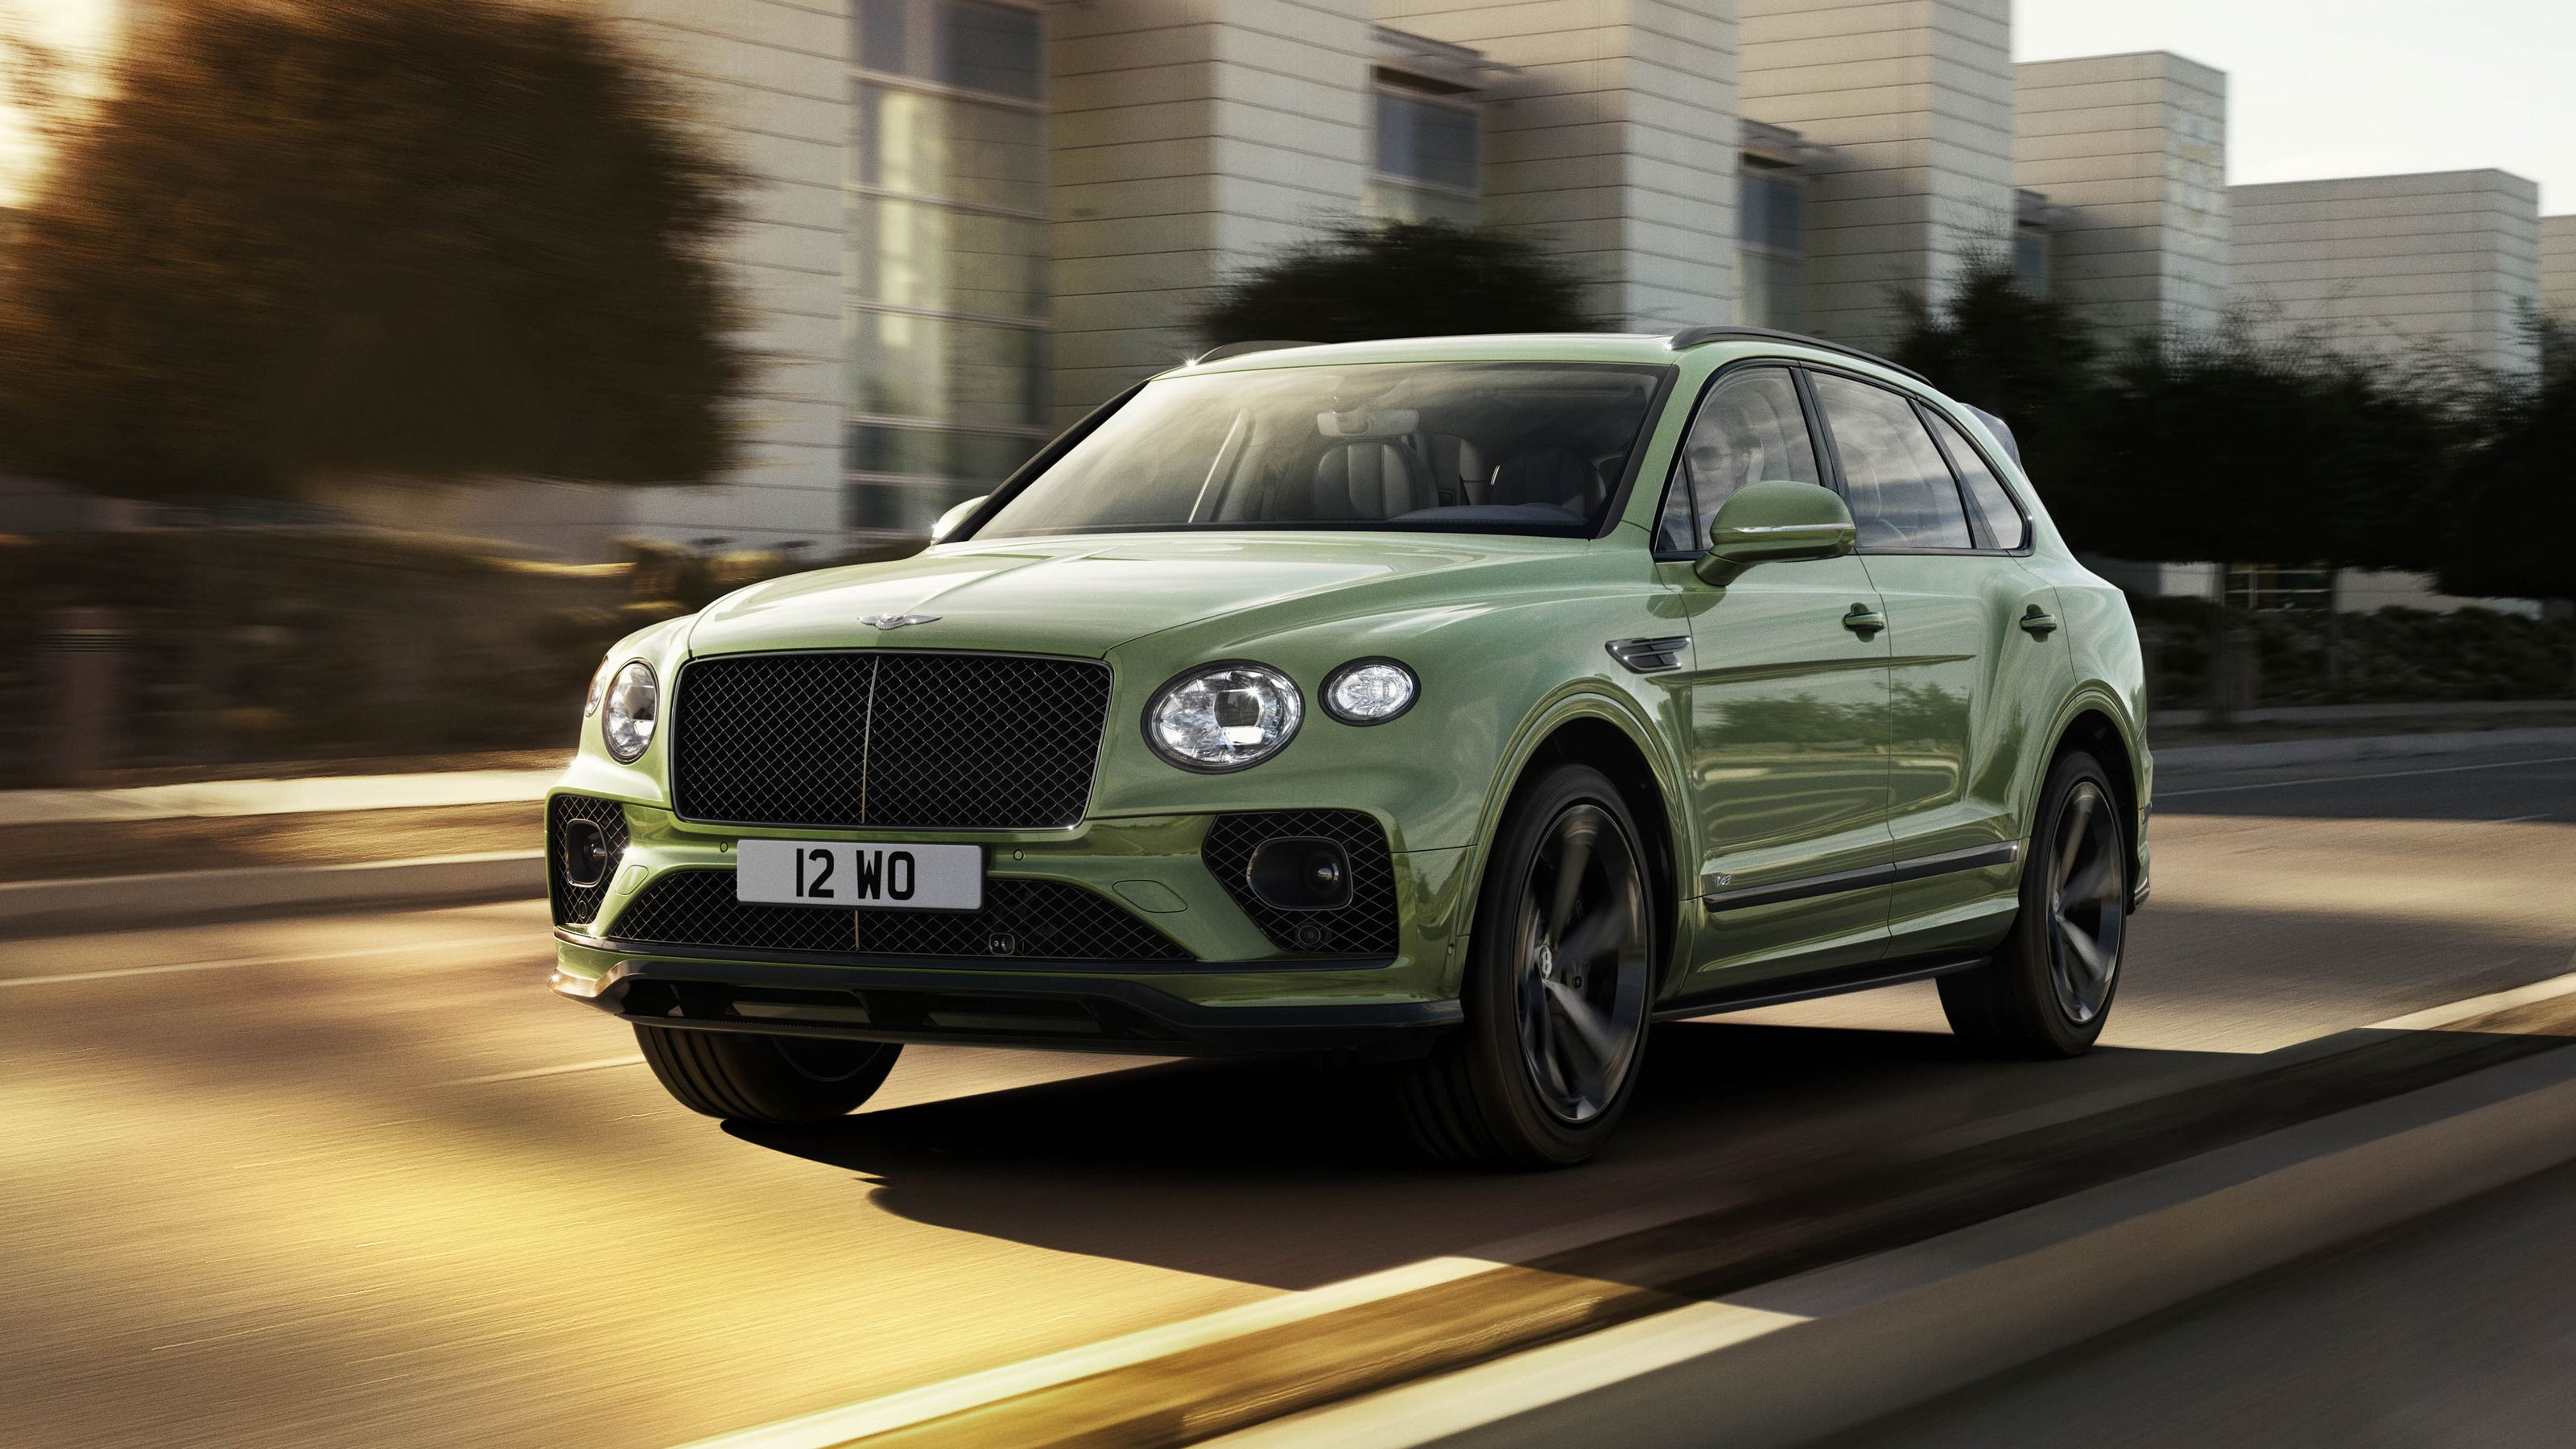 Facelifted Bentley Bentayga Hybrid Launched For 2021 Carbuyer